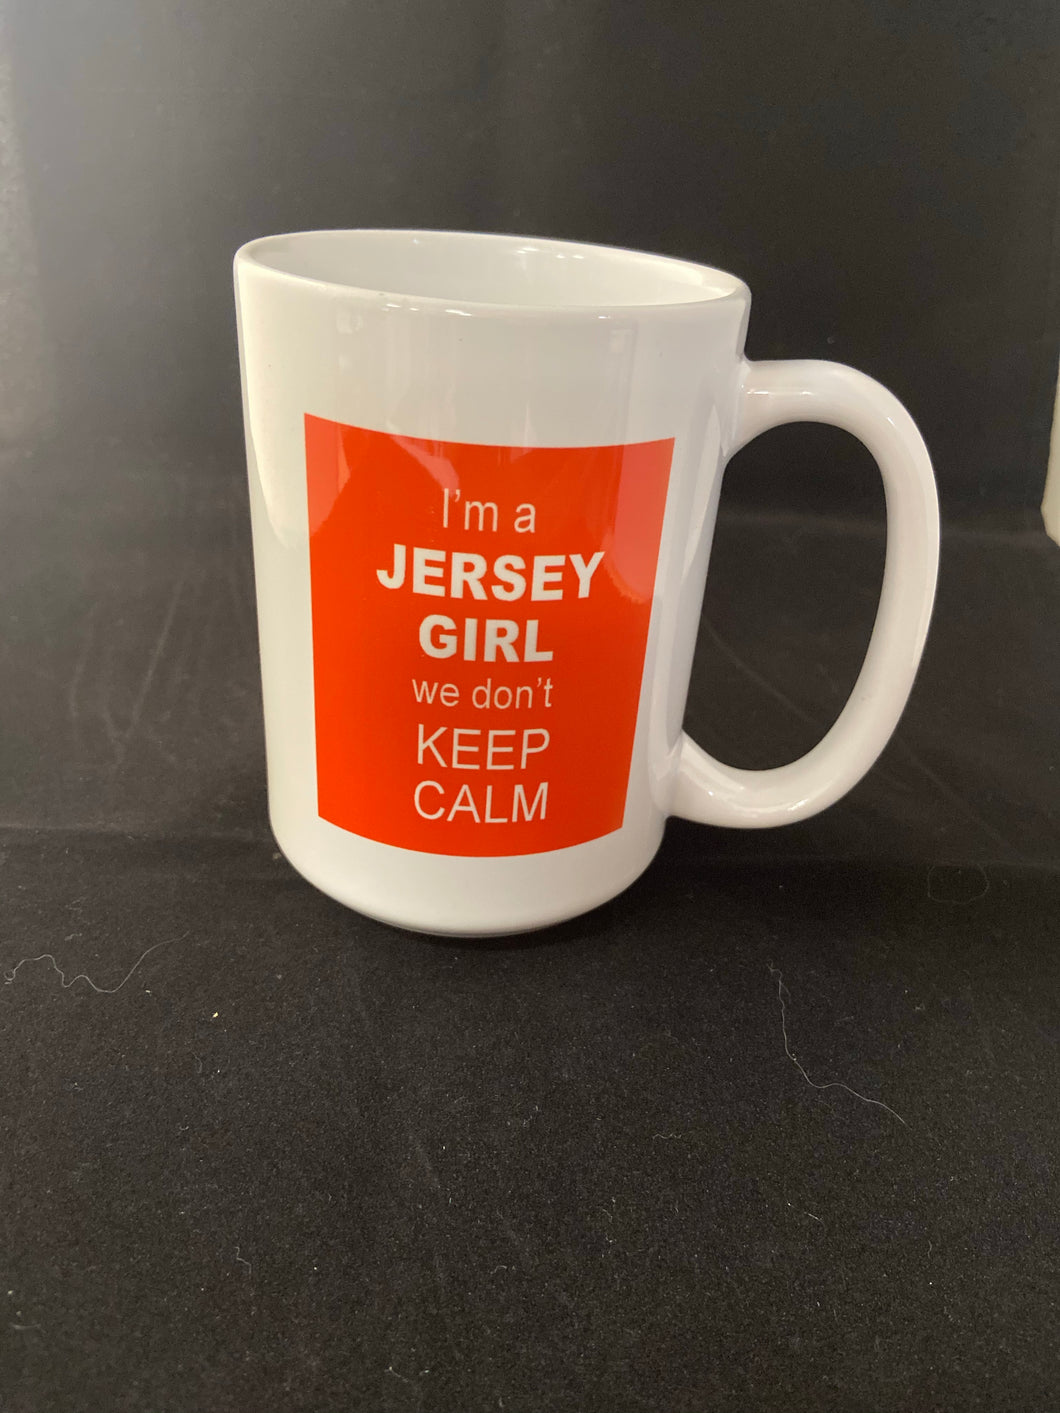 I'm a Jersey Girl we don't keep calm